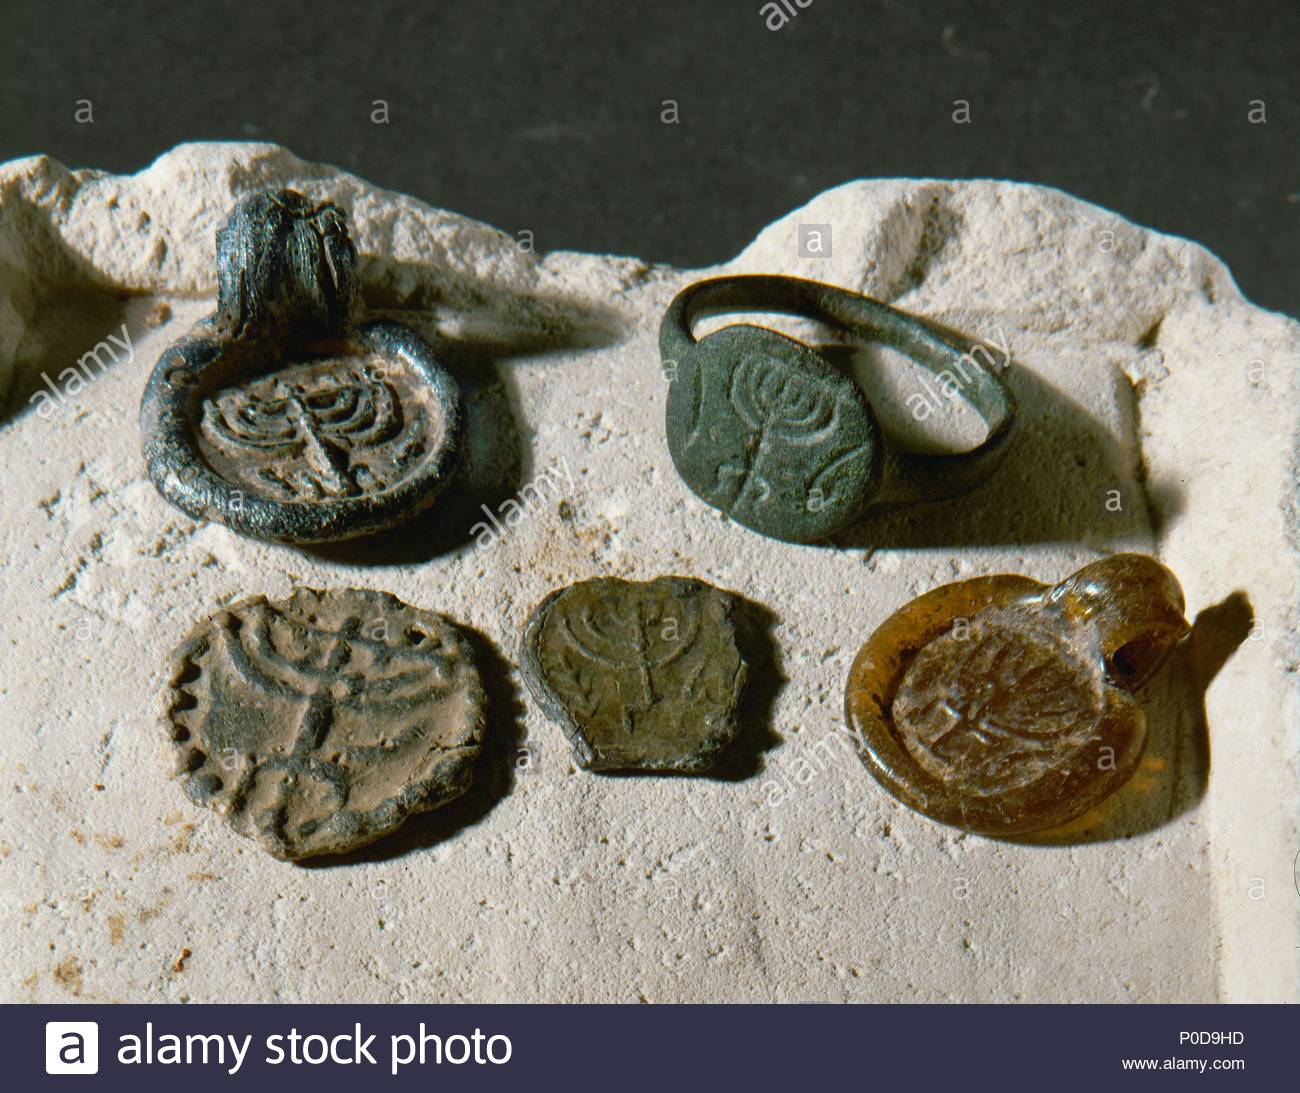 Seal ring with menorah design, bronze (4th CE); Byzantine medallions, glass and lead (2nd-3rd CE) Roman; Jewish teressa coin, lead (2nd CE) Roman. Location: Haaretz Museum, Tel Aviv, Israel. - Stock Image